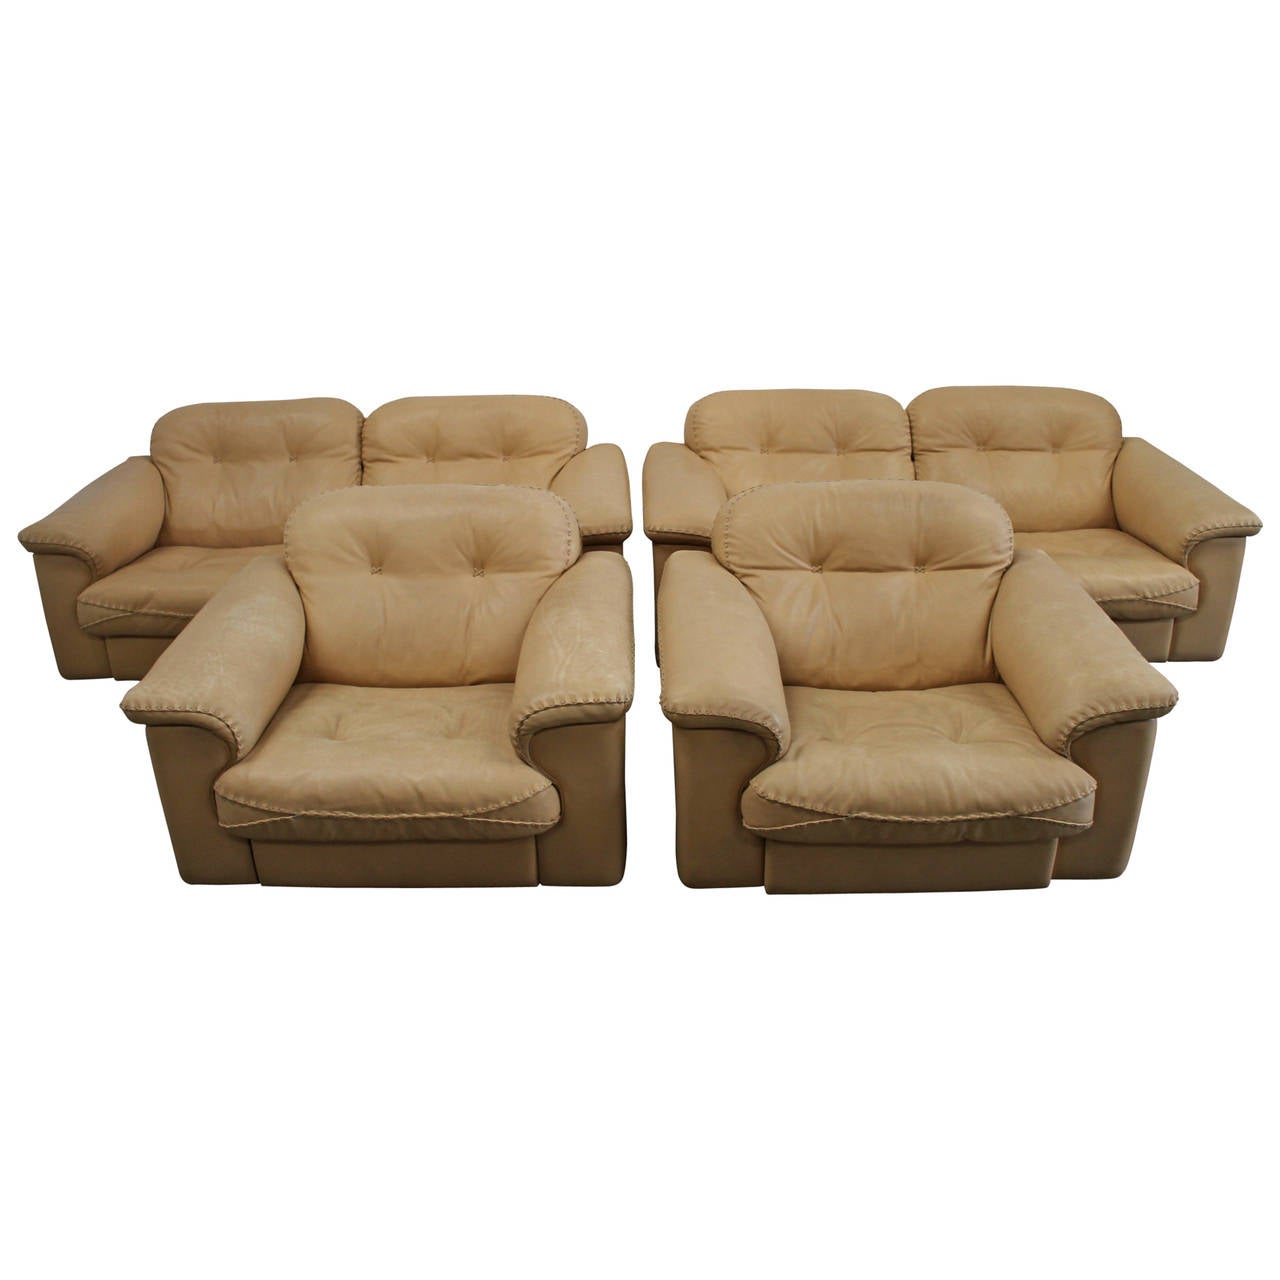 de sede ds 101 two sofa and two armchair suite in neck leather for sale at 1stdibs. Black Bedroom Furniture Sets. Home Design Ideas